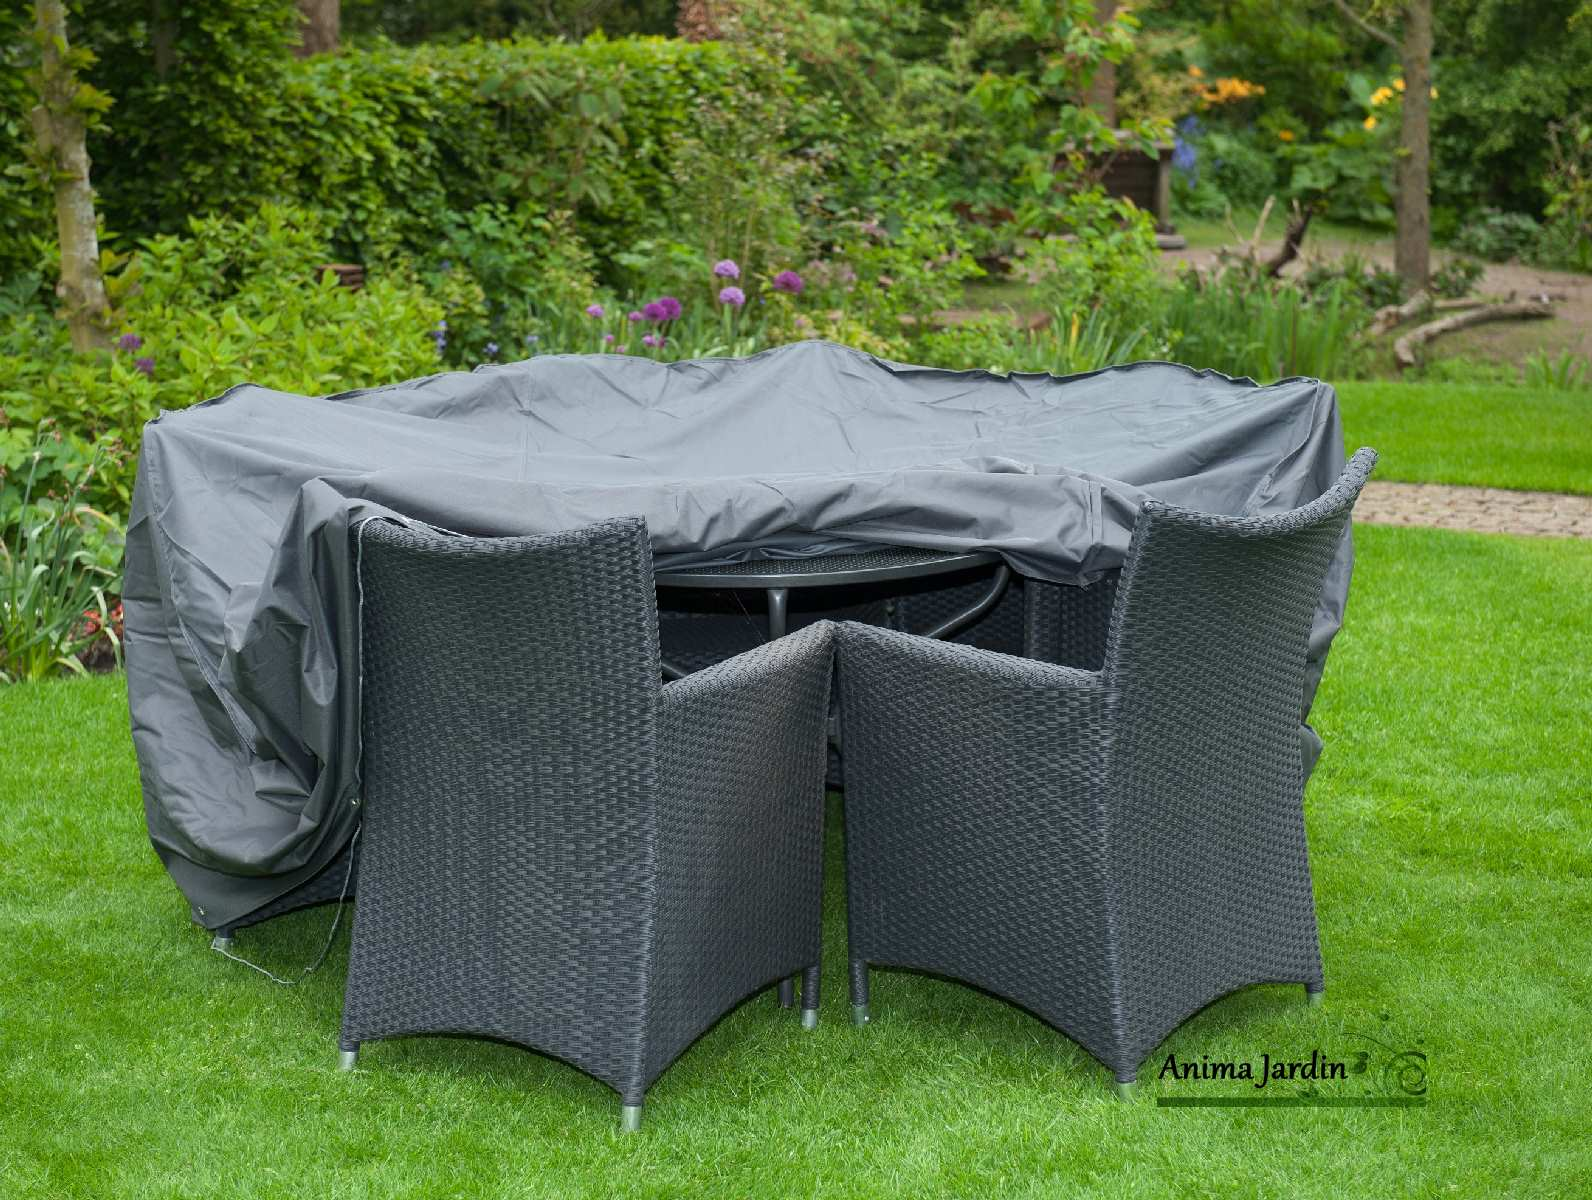 Housse de protection salon de jardin table ronde imperm able - Housse salon de jardin ...